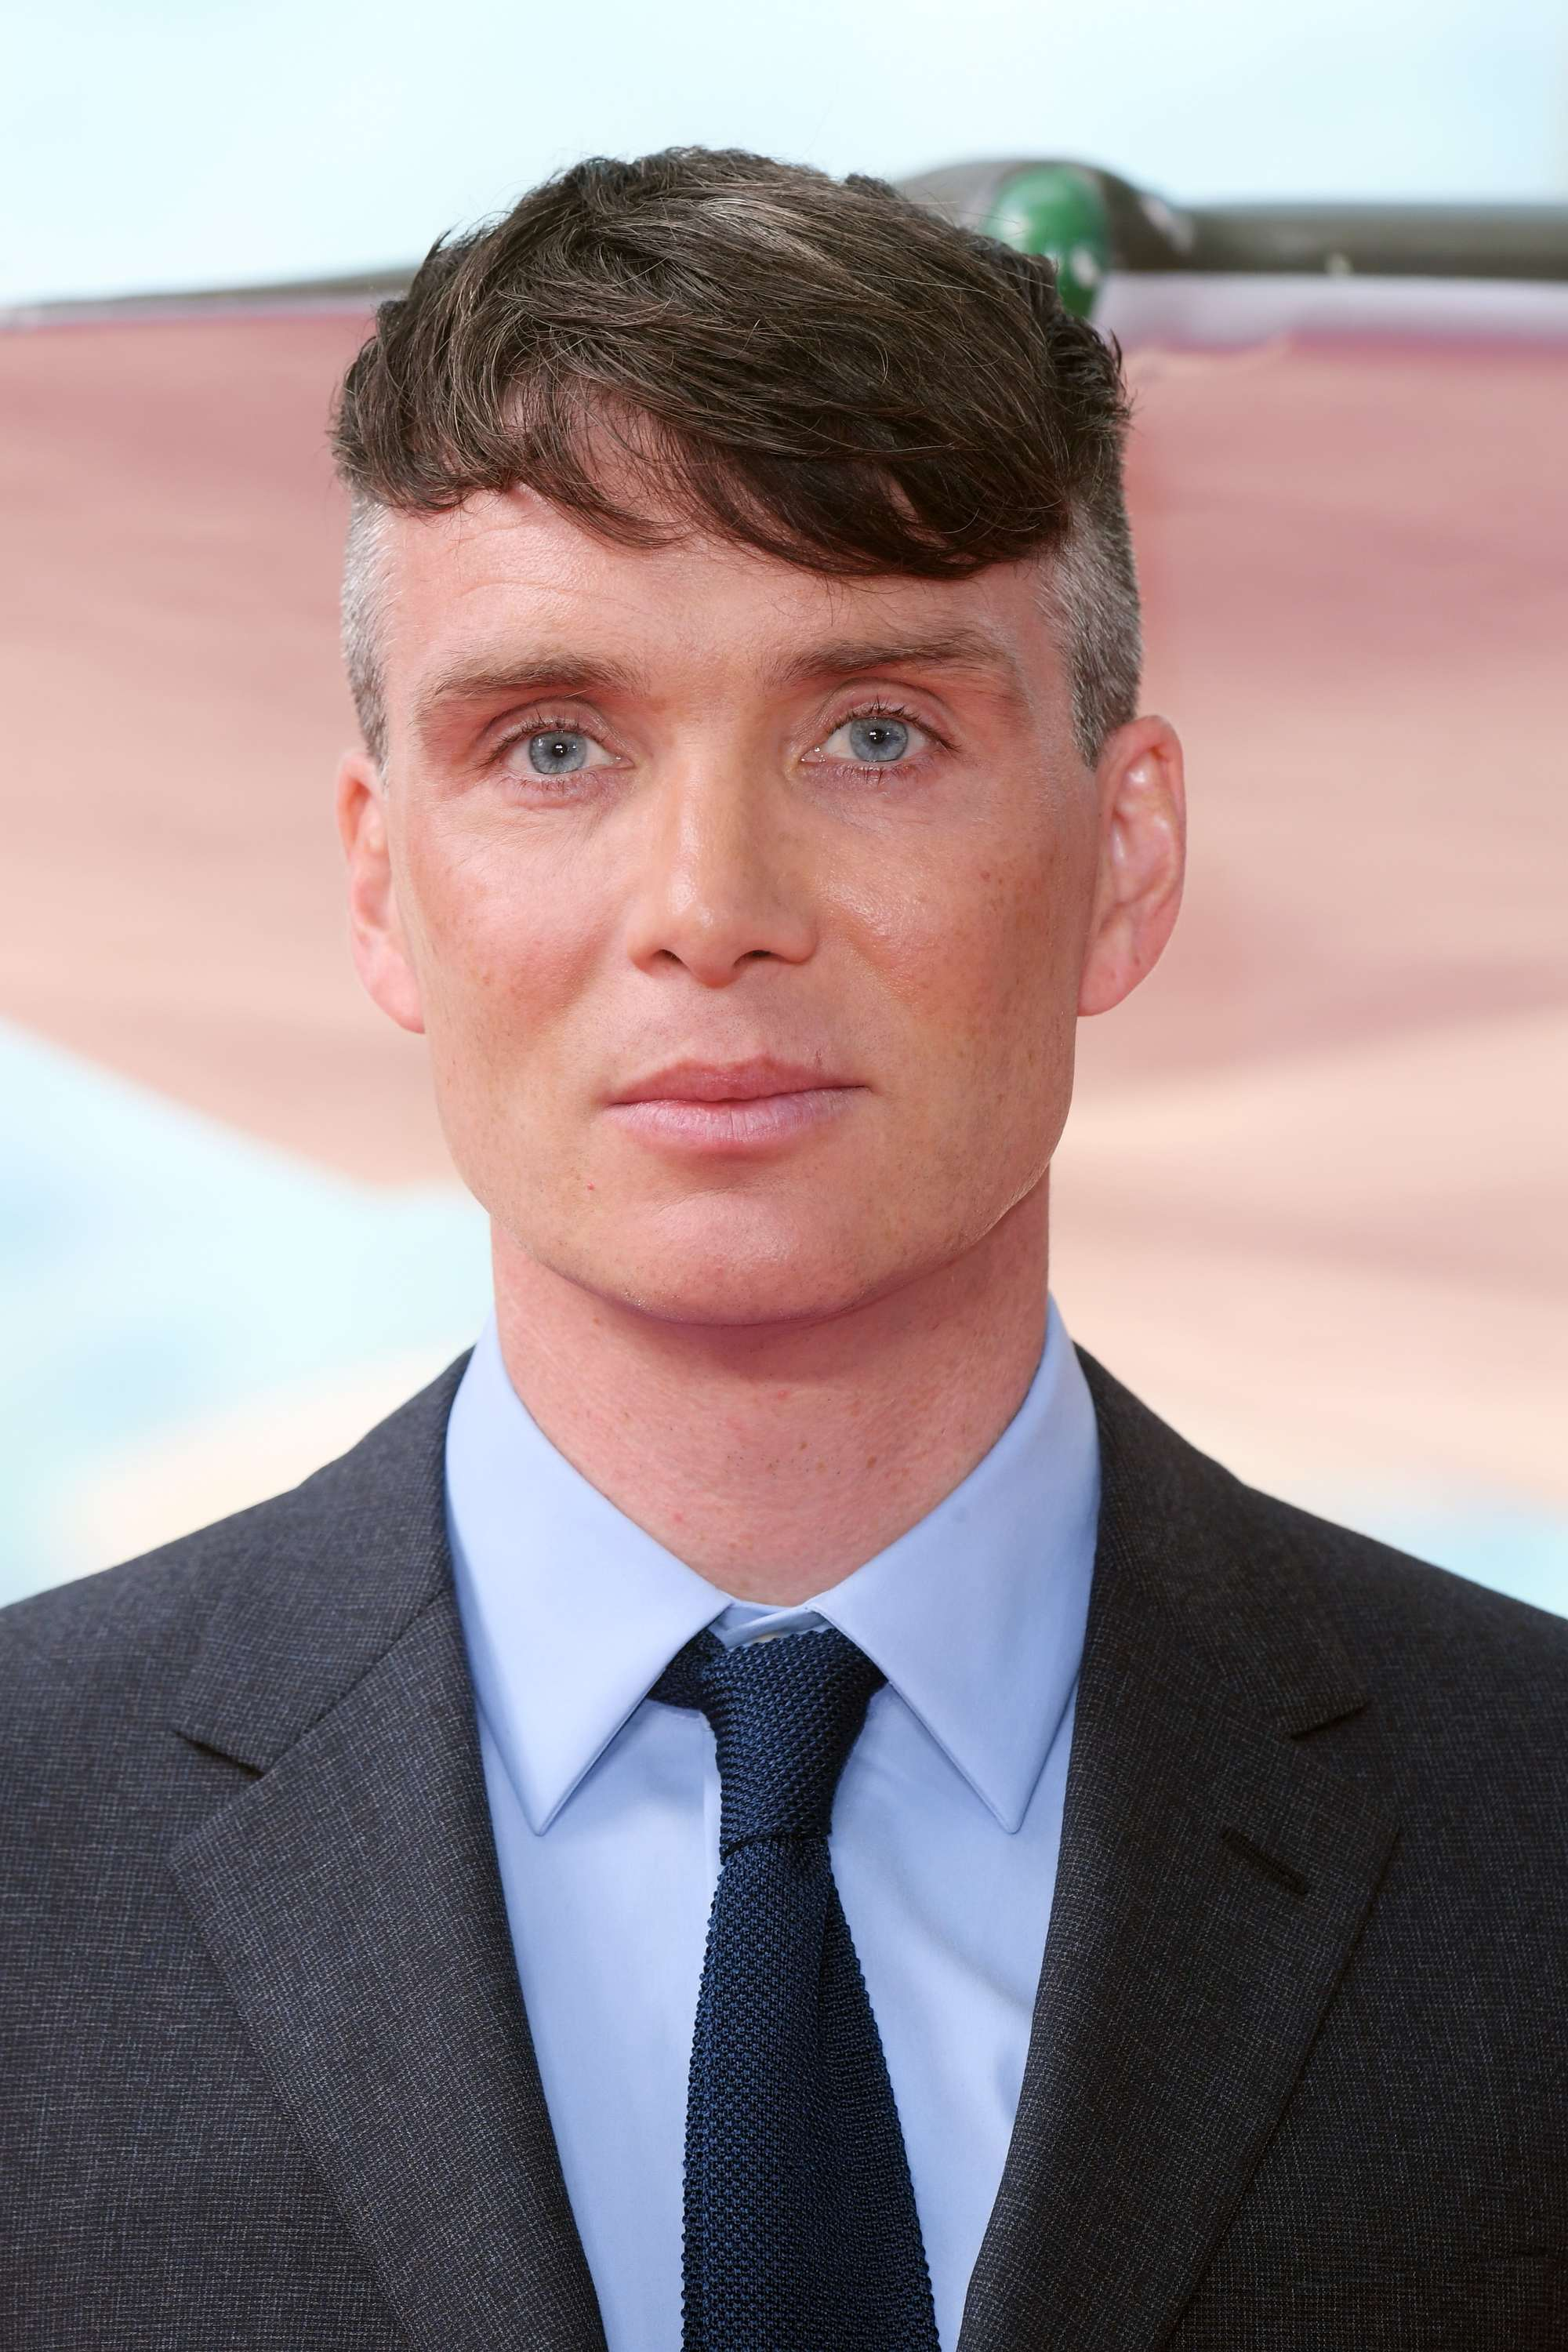 Dunkirk premiere 2017: The best looks from the red carpet ...